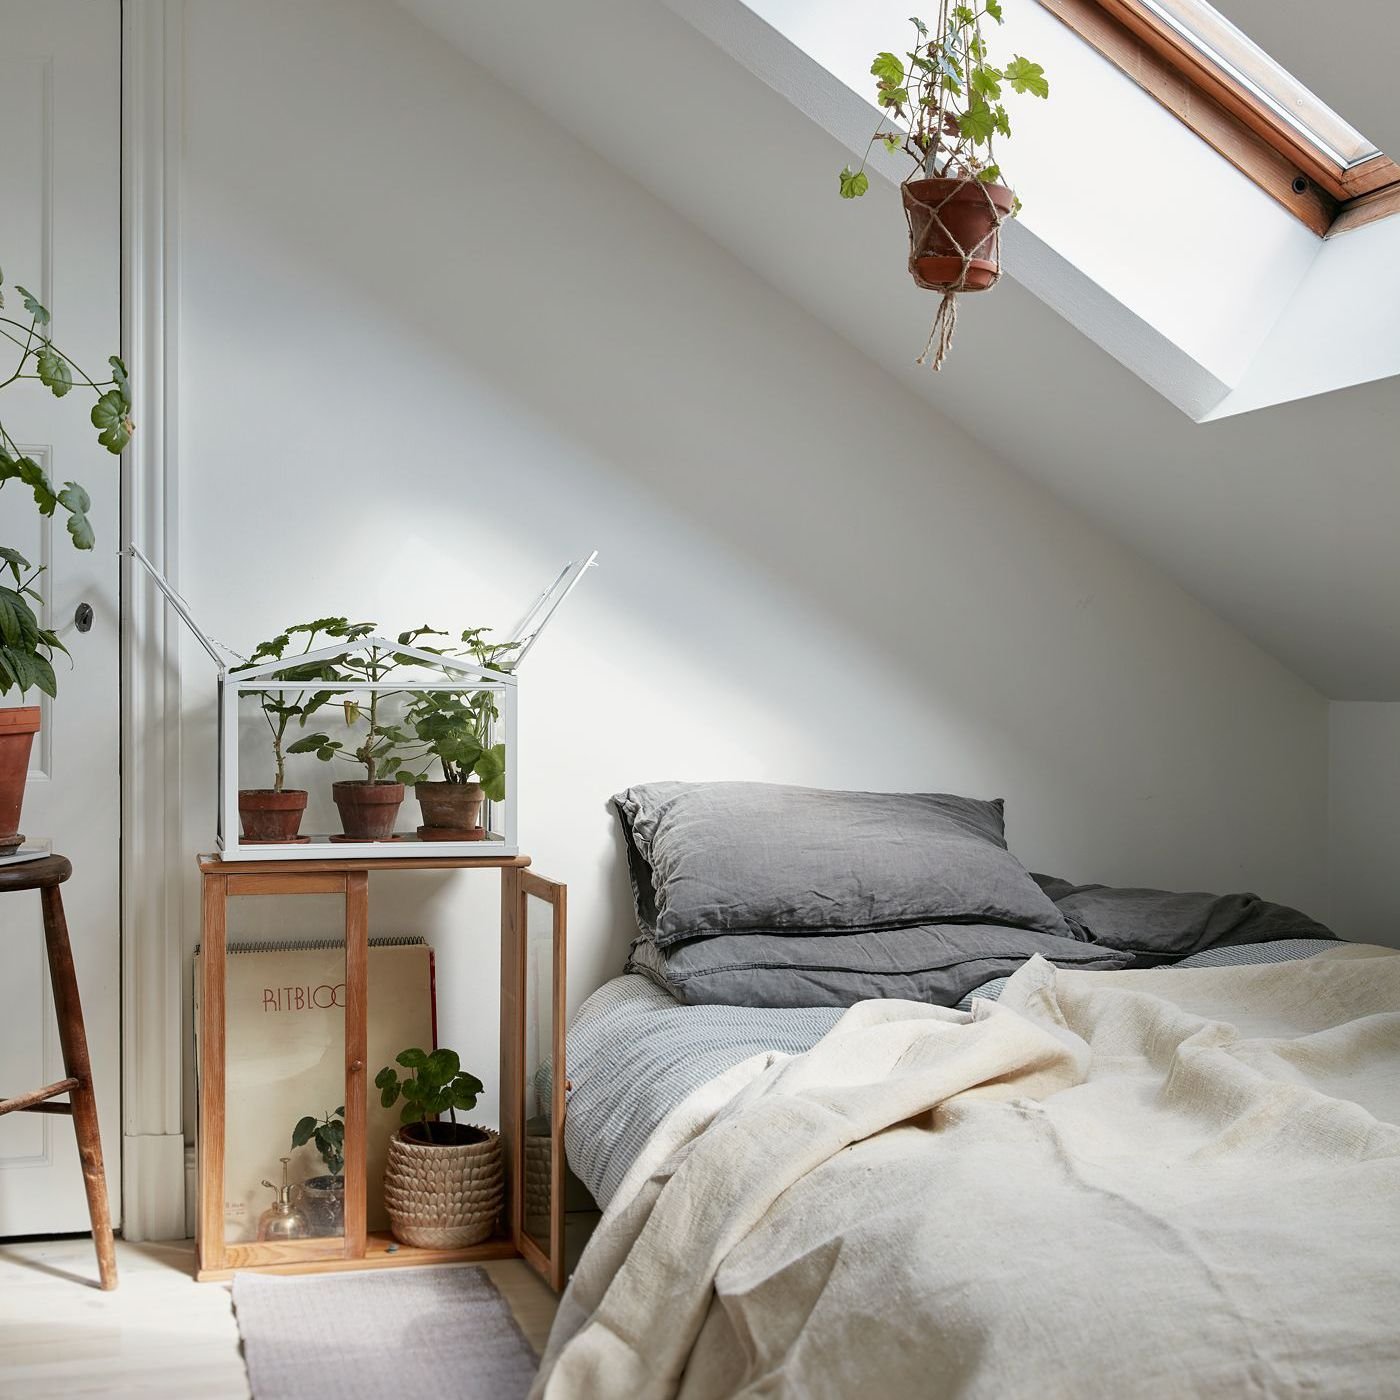 These Attic Bedrooms Are Making Us Want To Move Upstairs